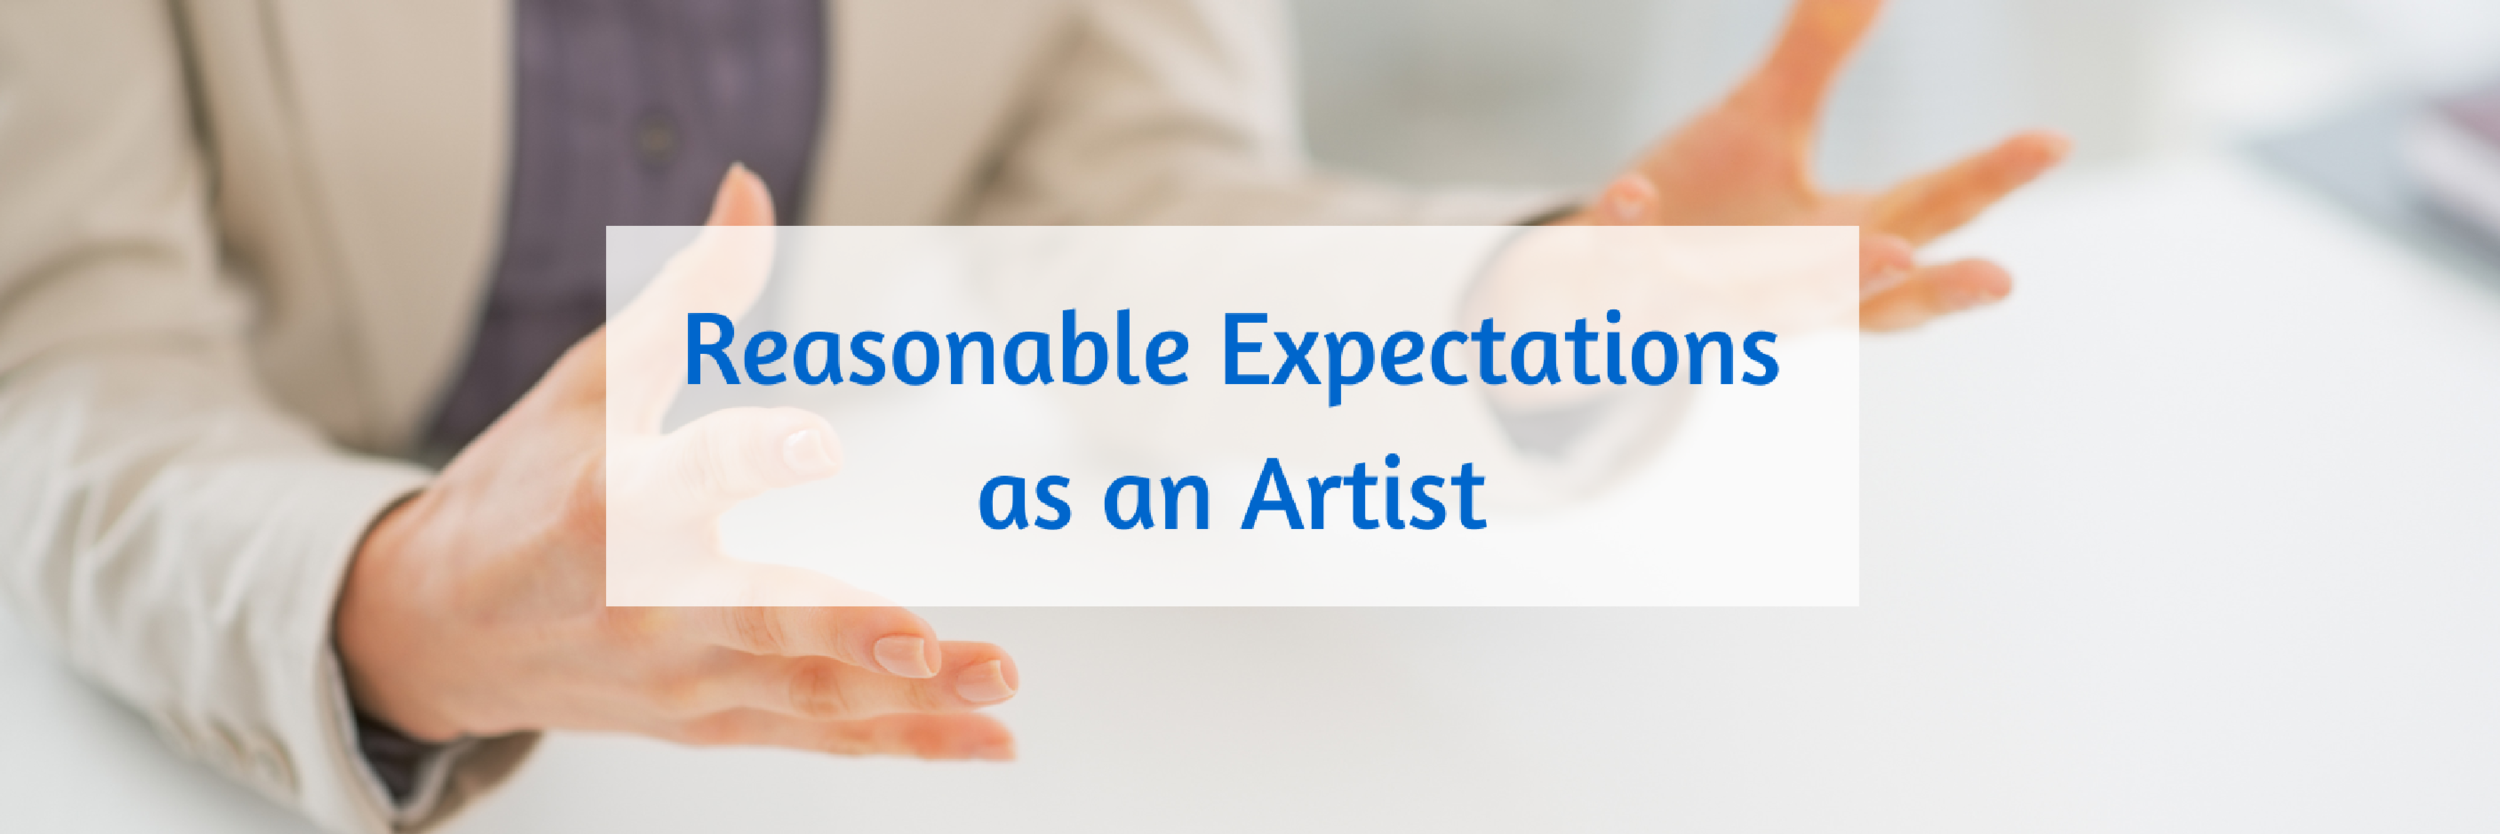 124 Reasonable Expectations as an Artist.png